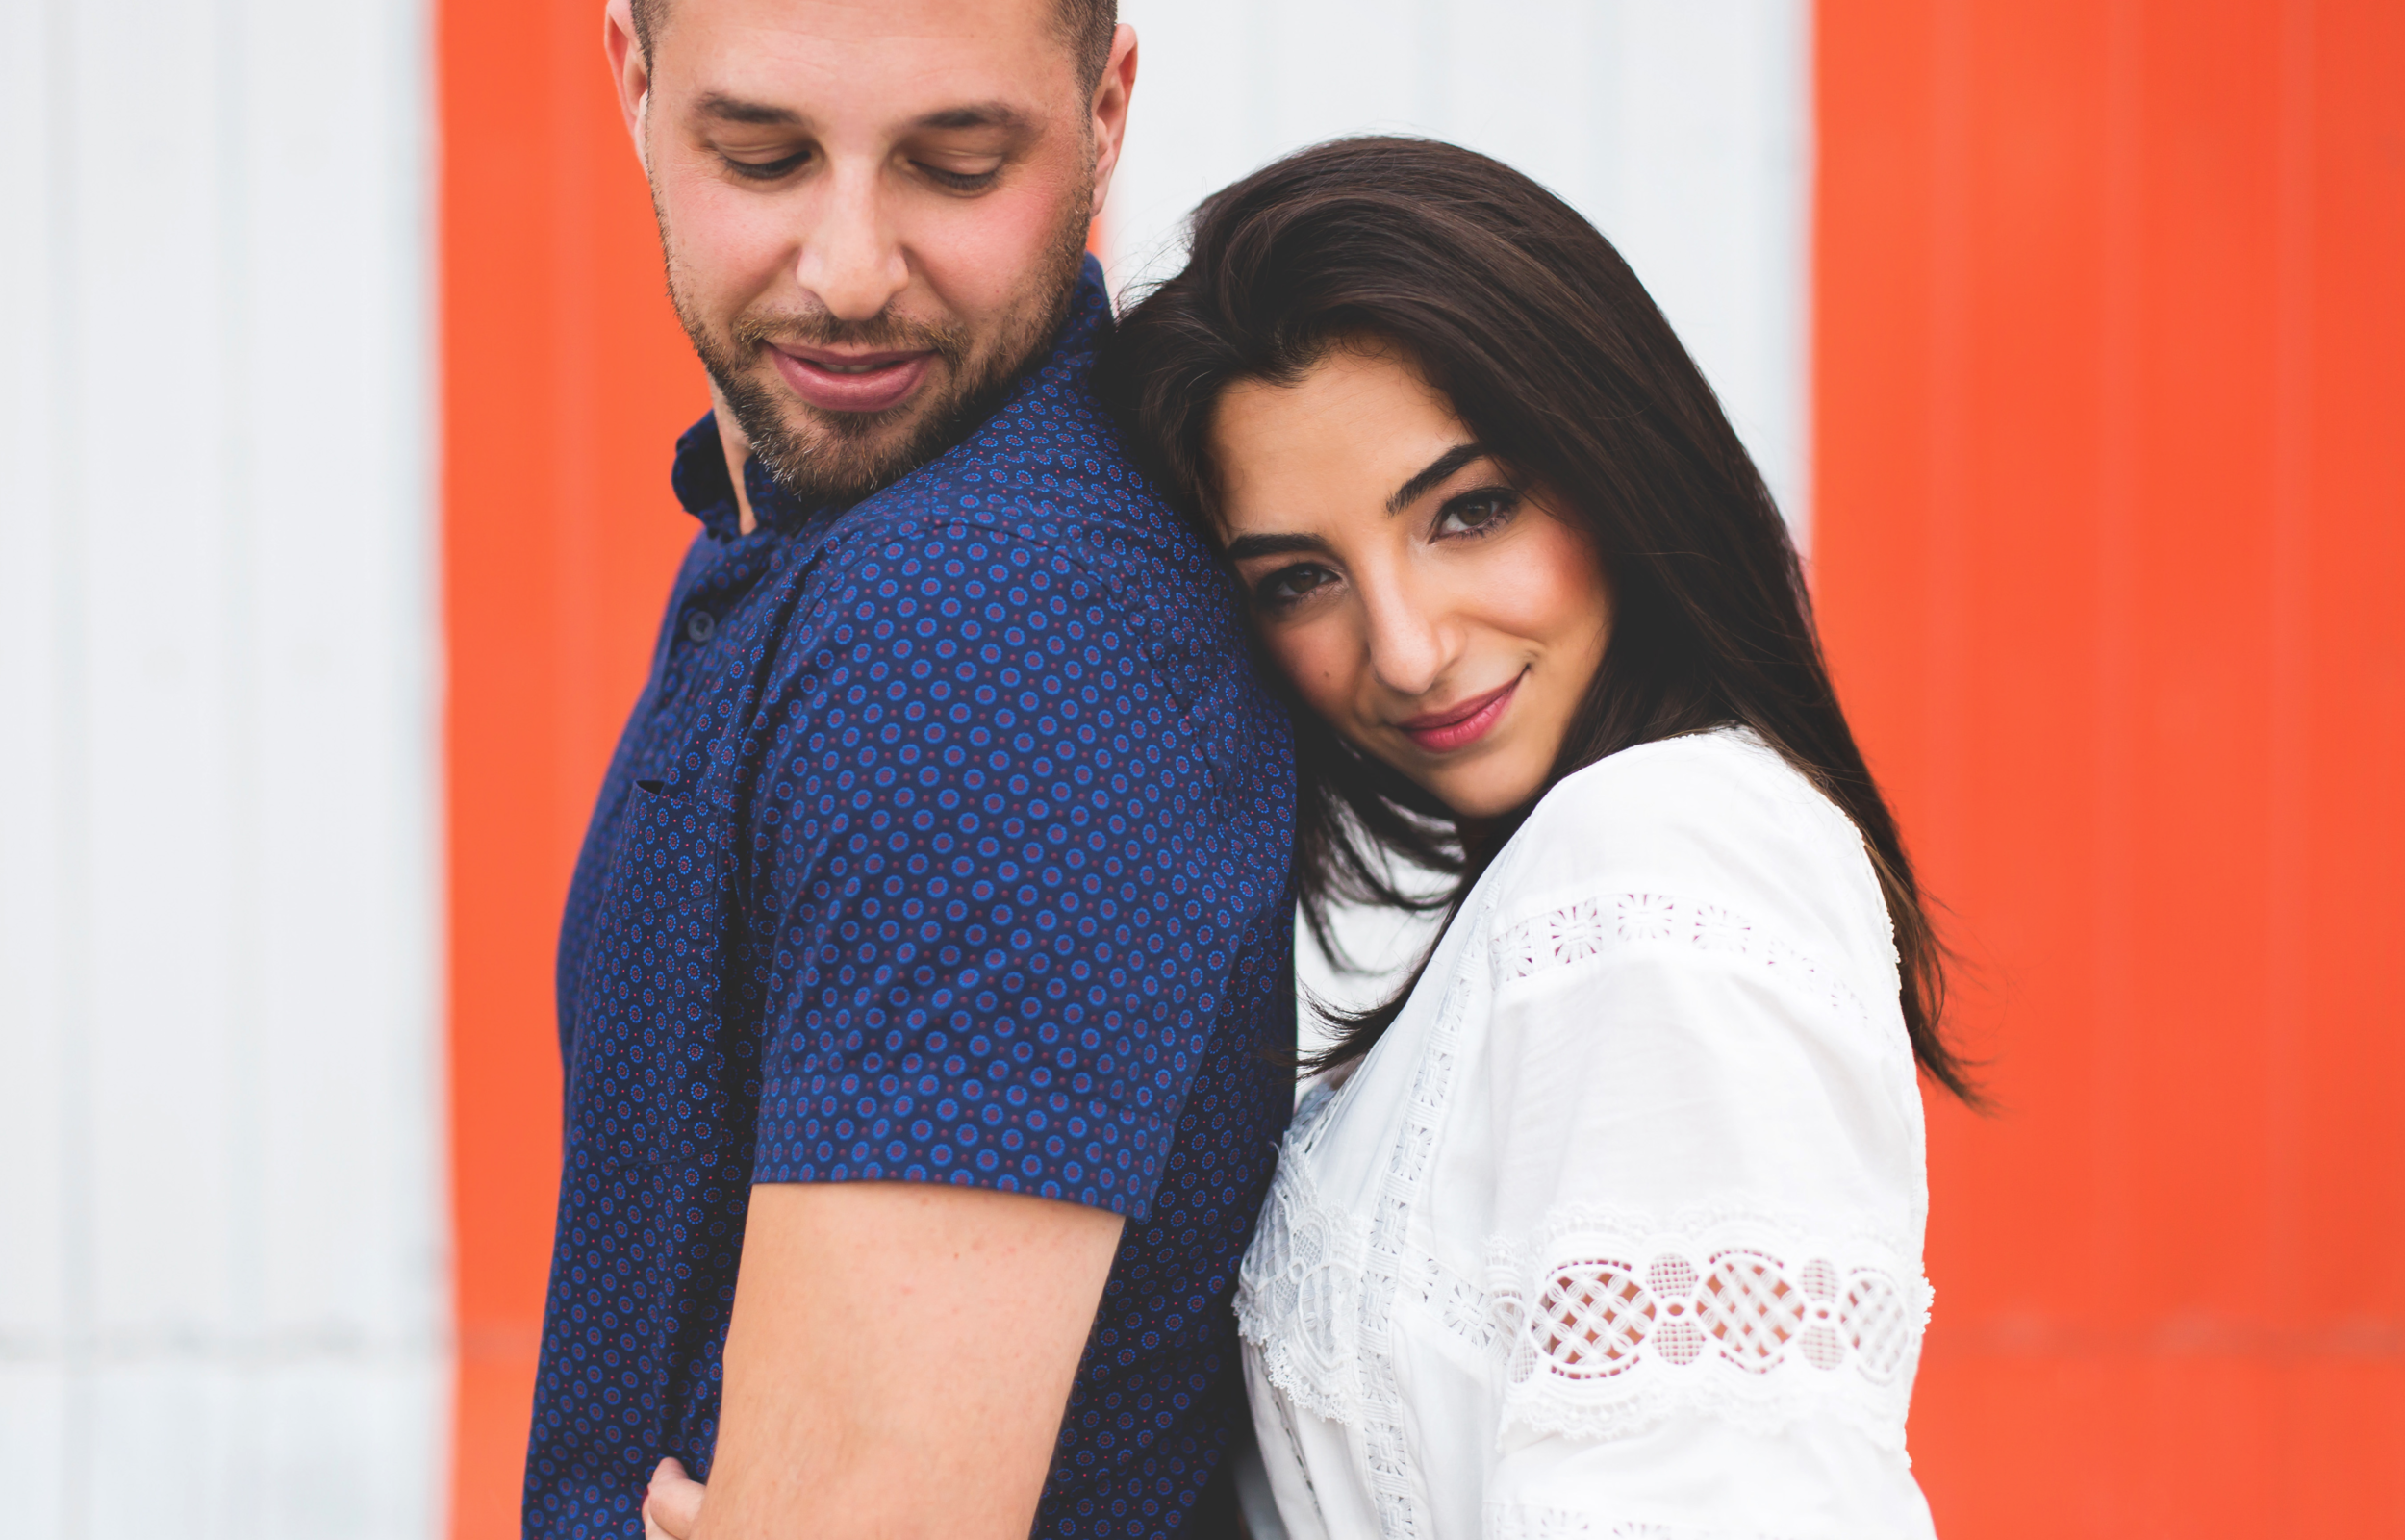 Engagement-Session-Hamilton-Burlington-Oakville-Toronto-Niagara-Wedding-Photographer-Engaged-Photography-Brantford-Airport-HamOnt-Engaged-Moments-by-Lauren-Photo-Image-20.png